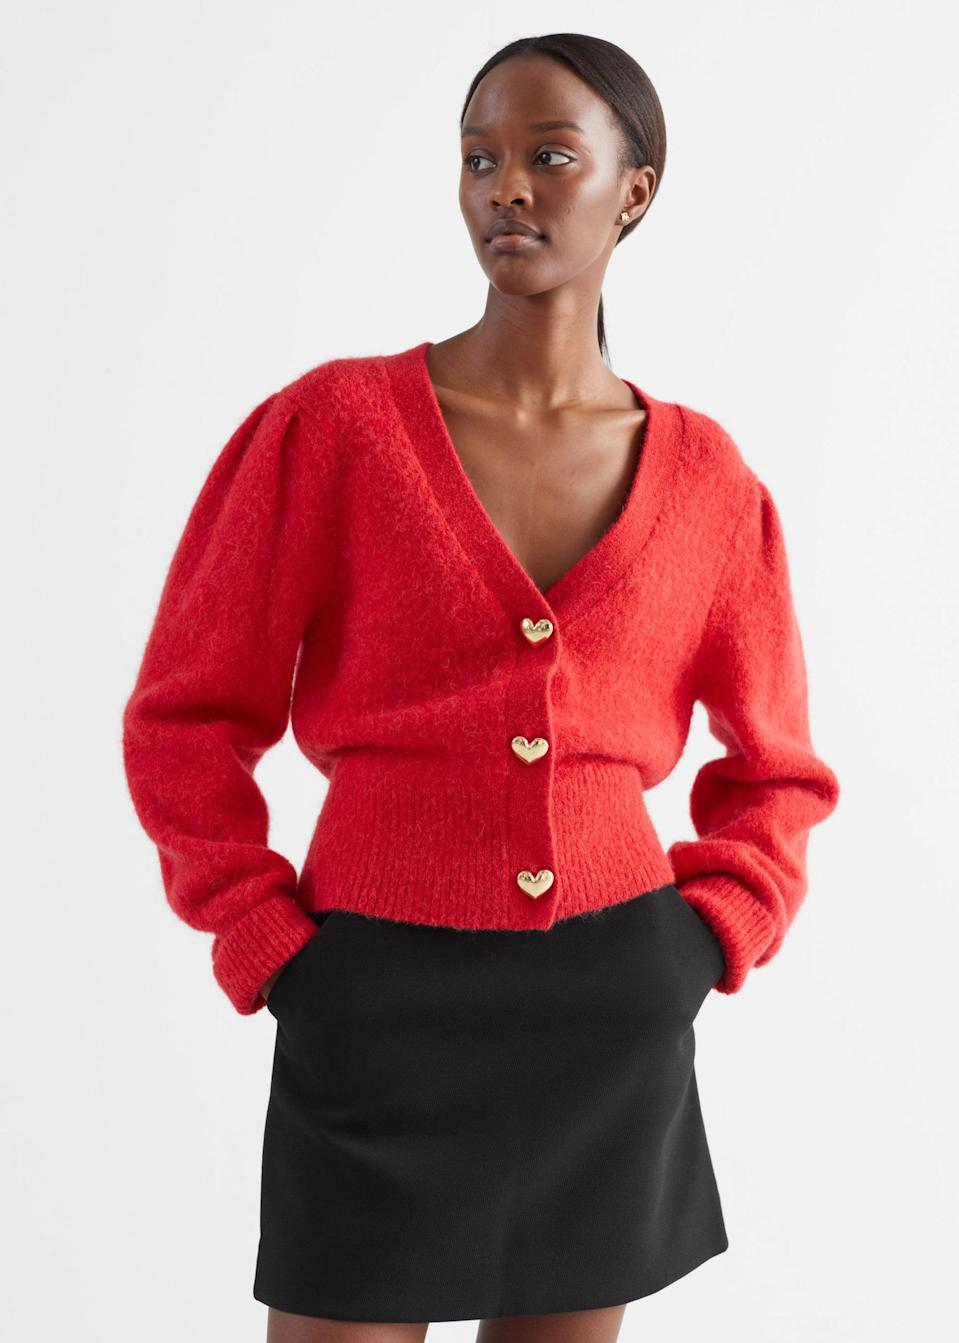 <p>If Valentine's Day was a top, it would be this <span>&amp; Other Stories Heart Button Alpaca Blend Cardigan</span> ($99).</p>